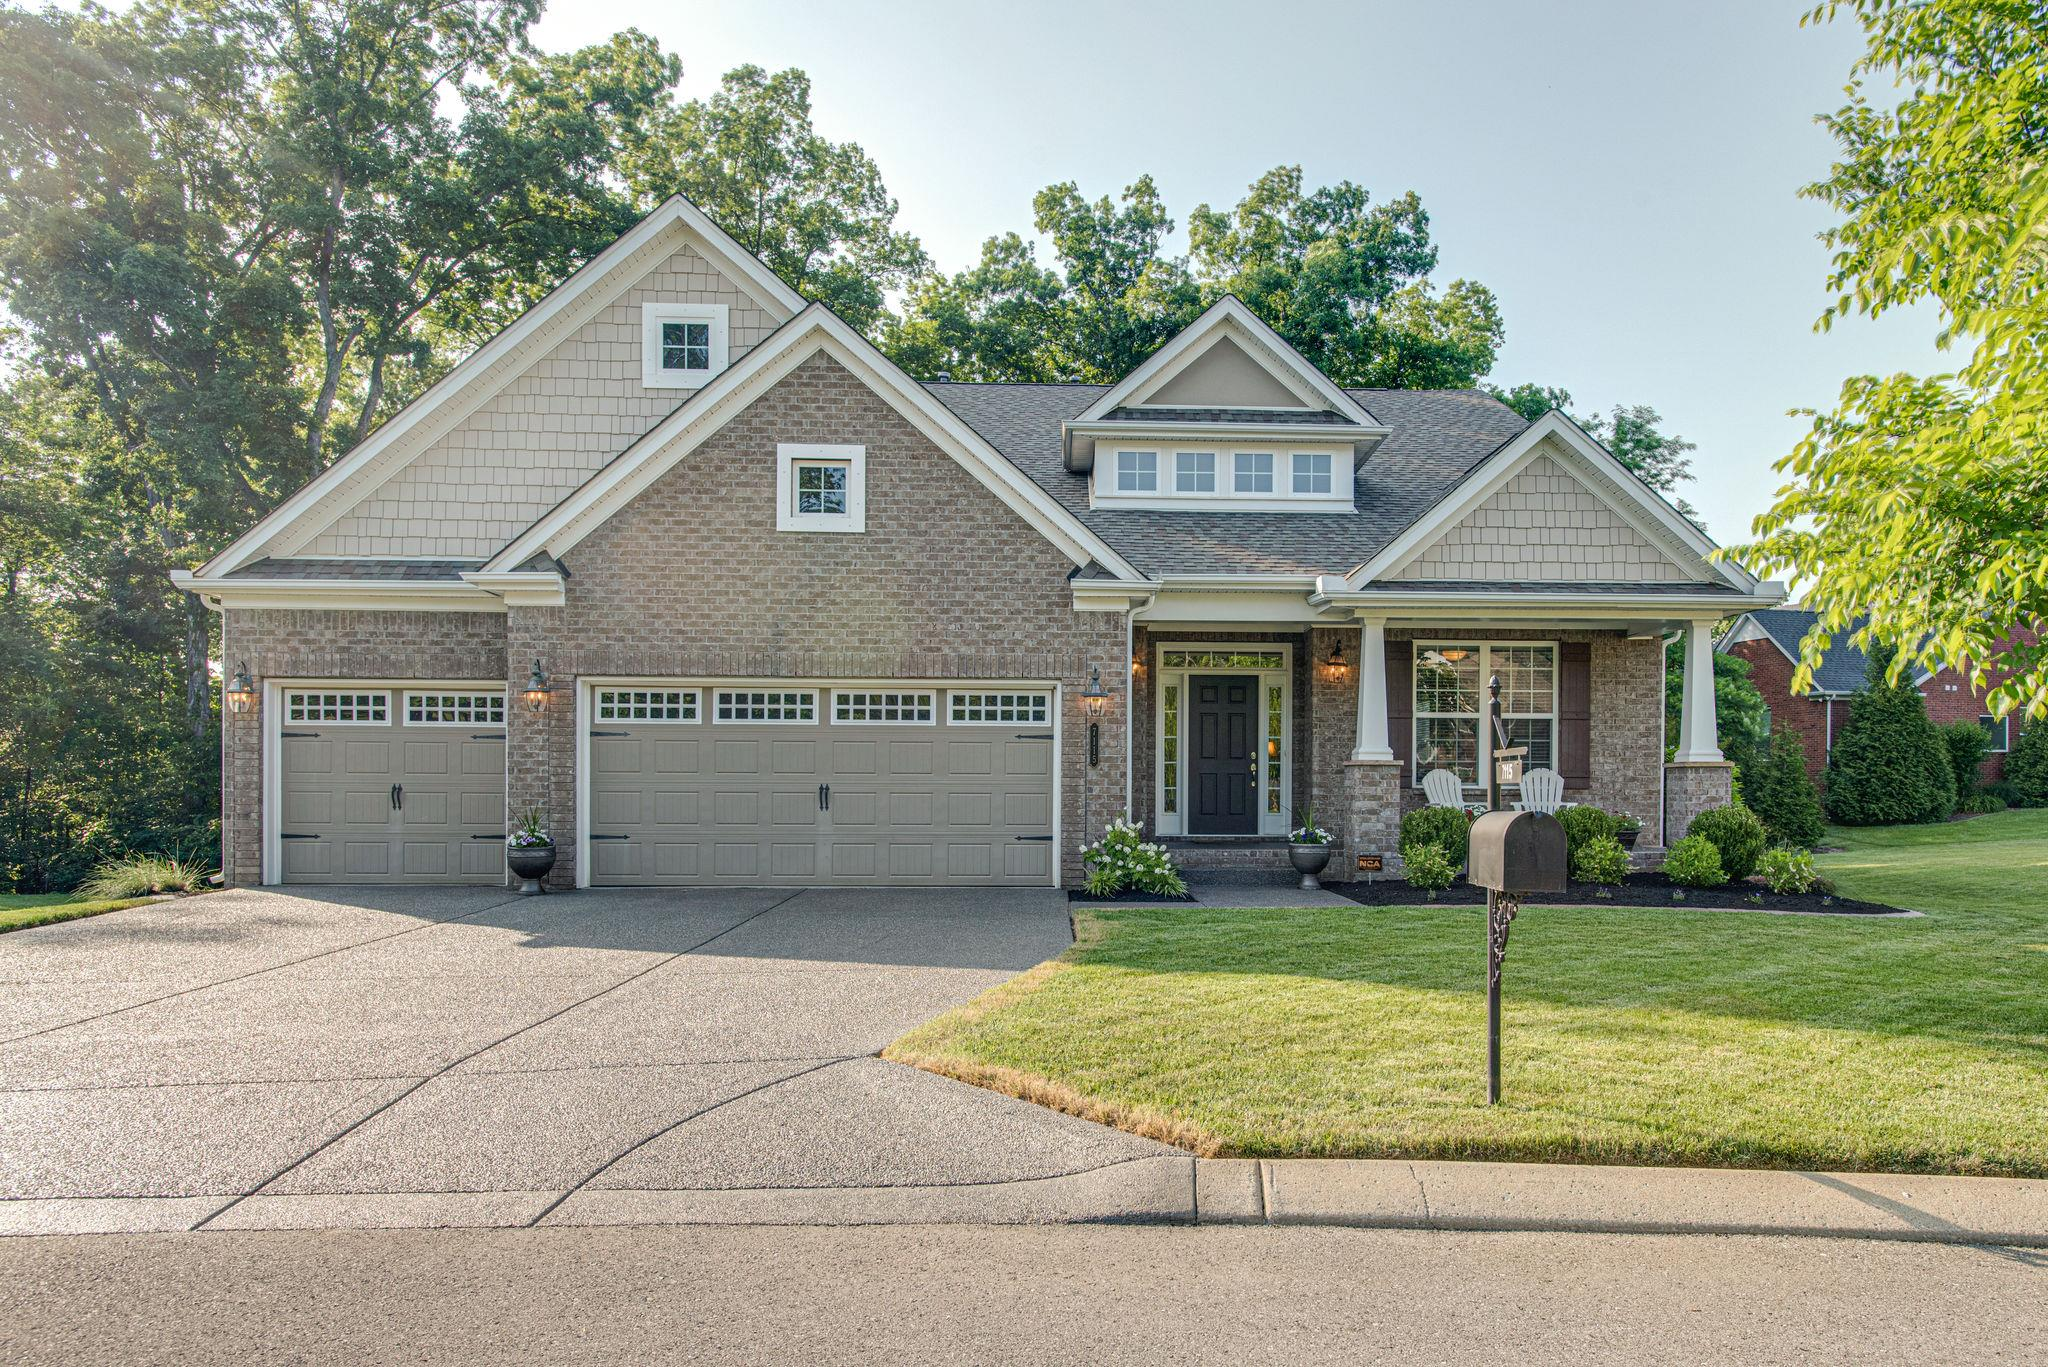 7115 Nolen Park Cir, Nolensville in Williamson County County, TN 37135 Home for Sale